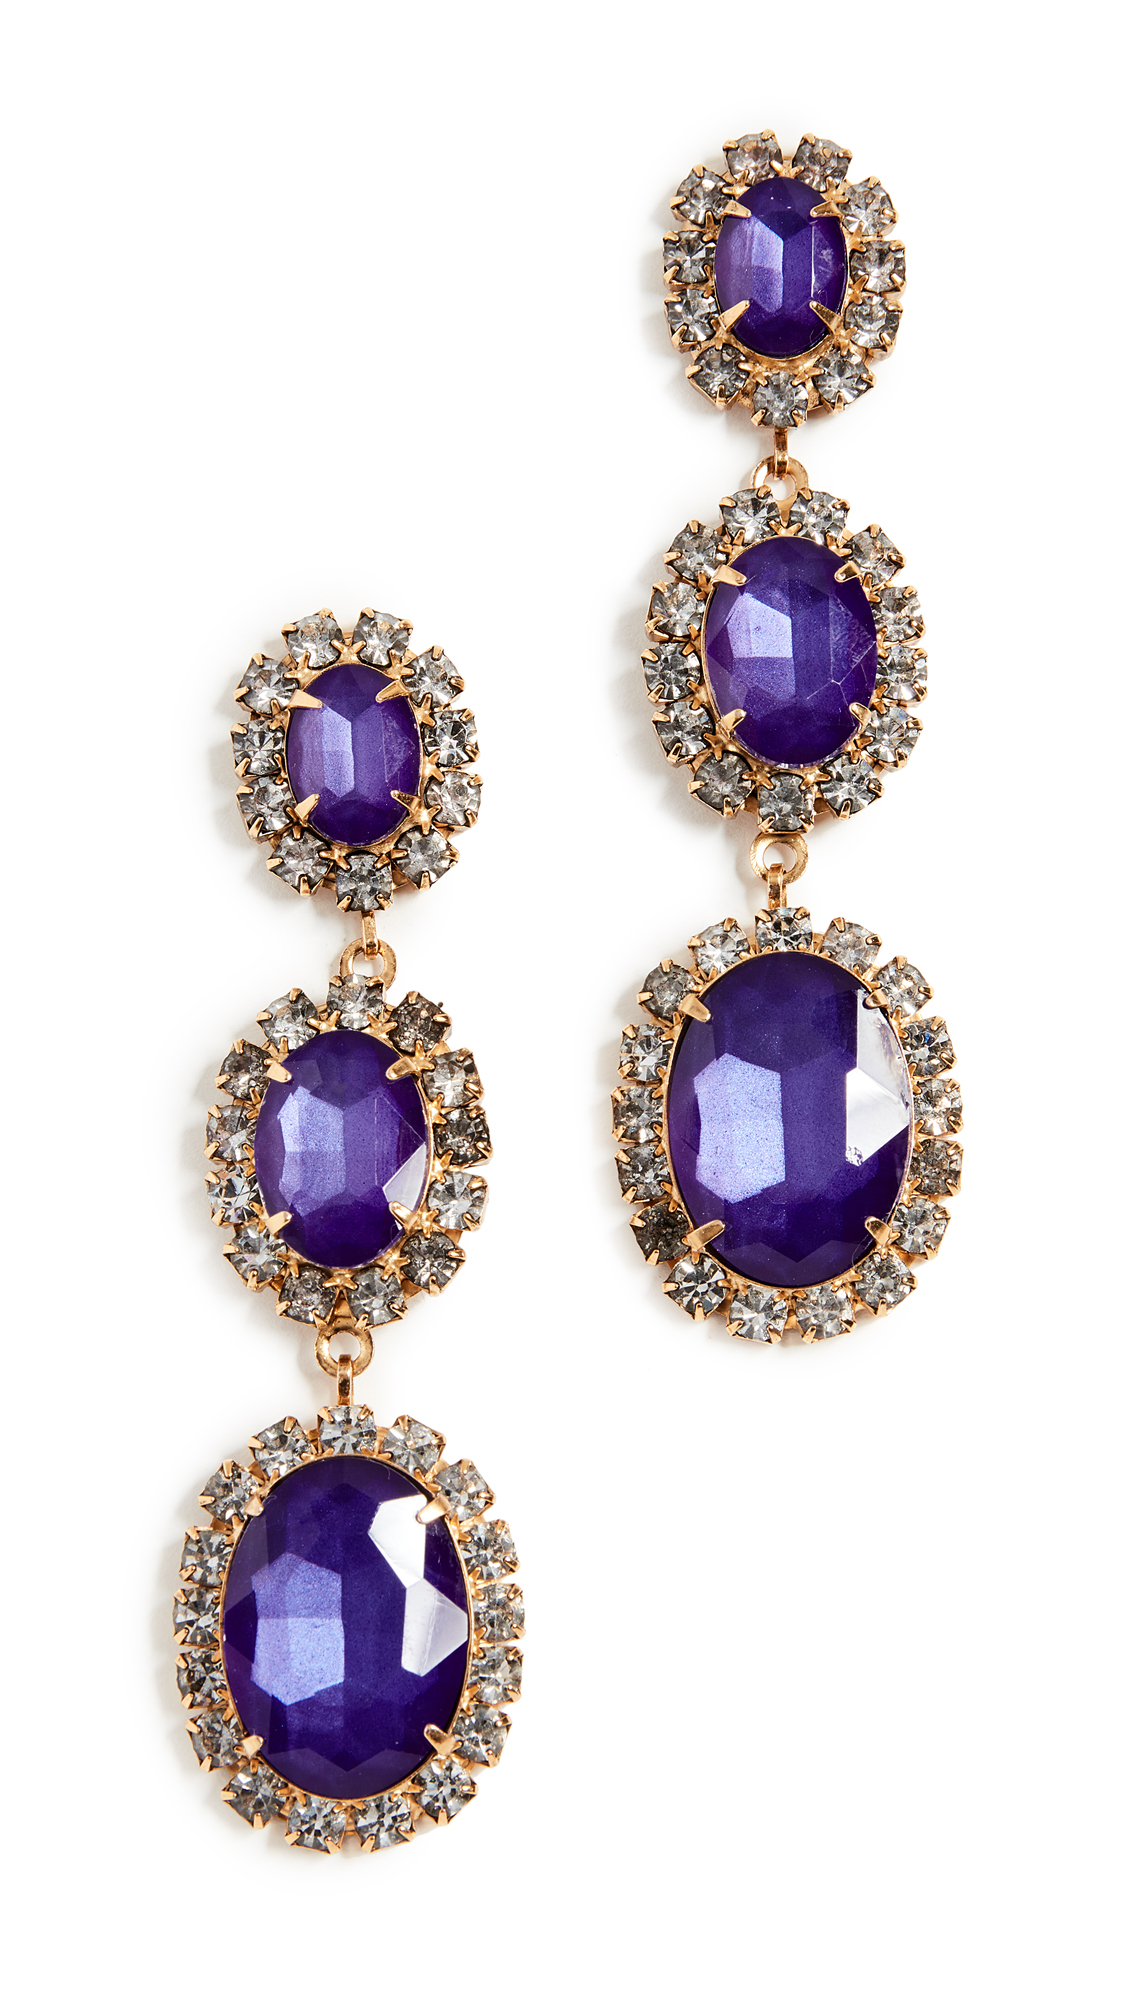 ELIZABETH COLE LAWRENCE EARRINGS